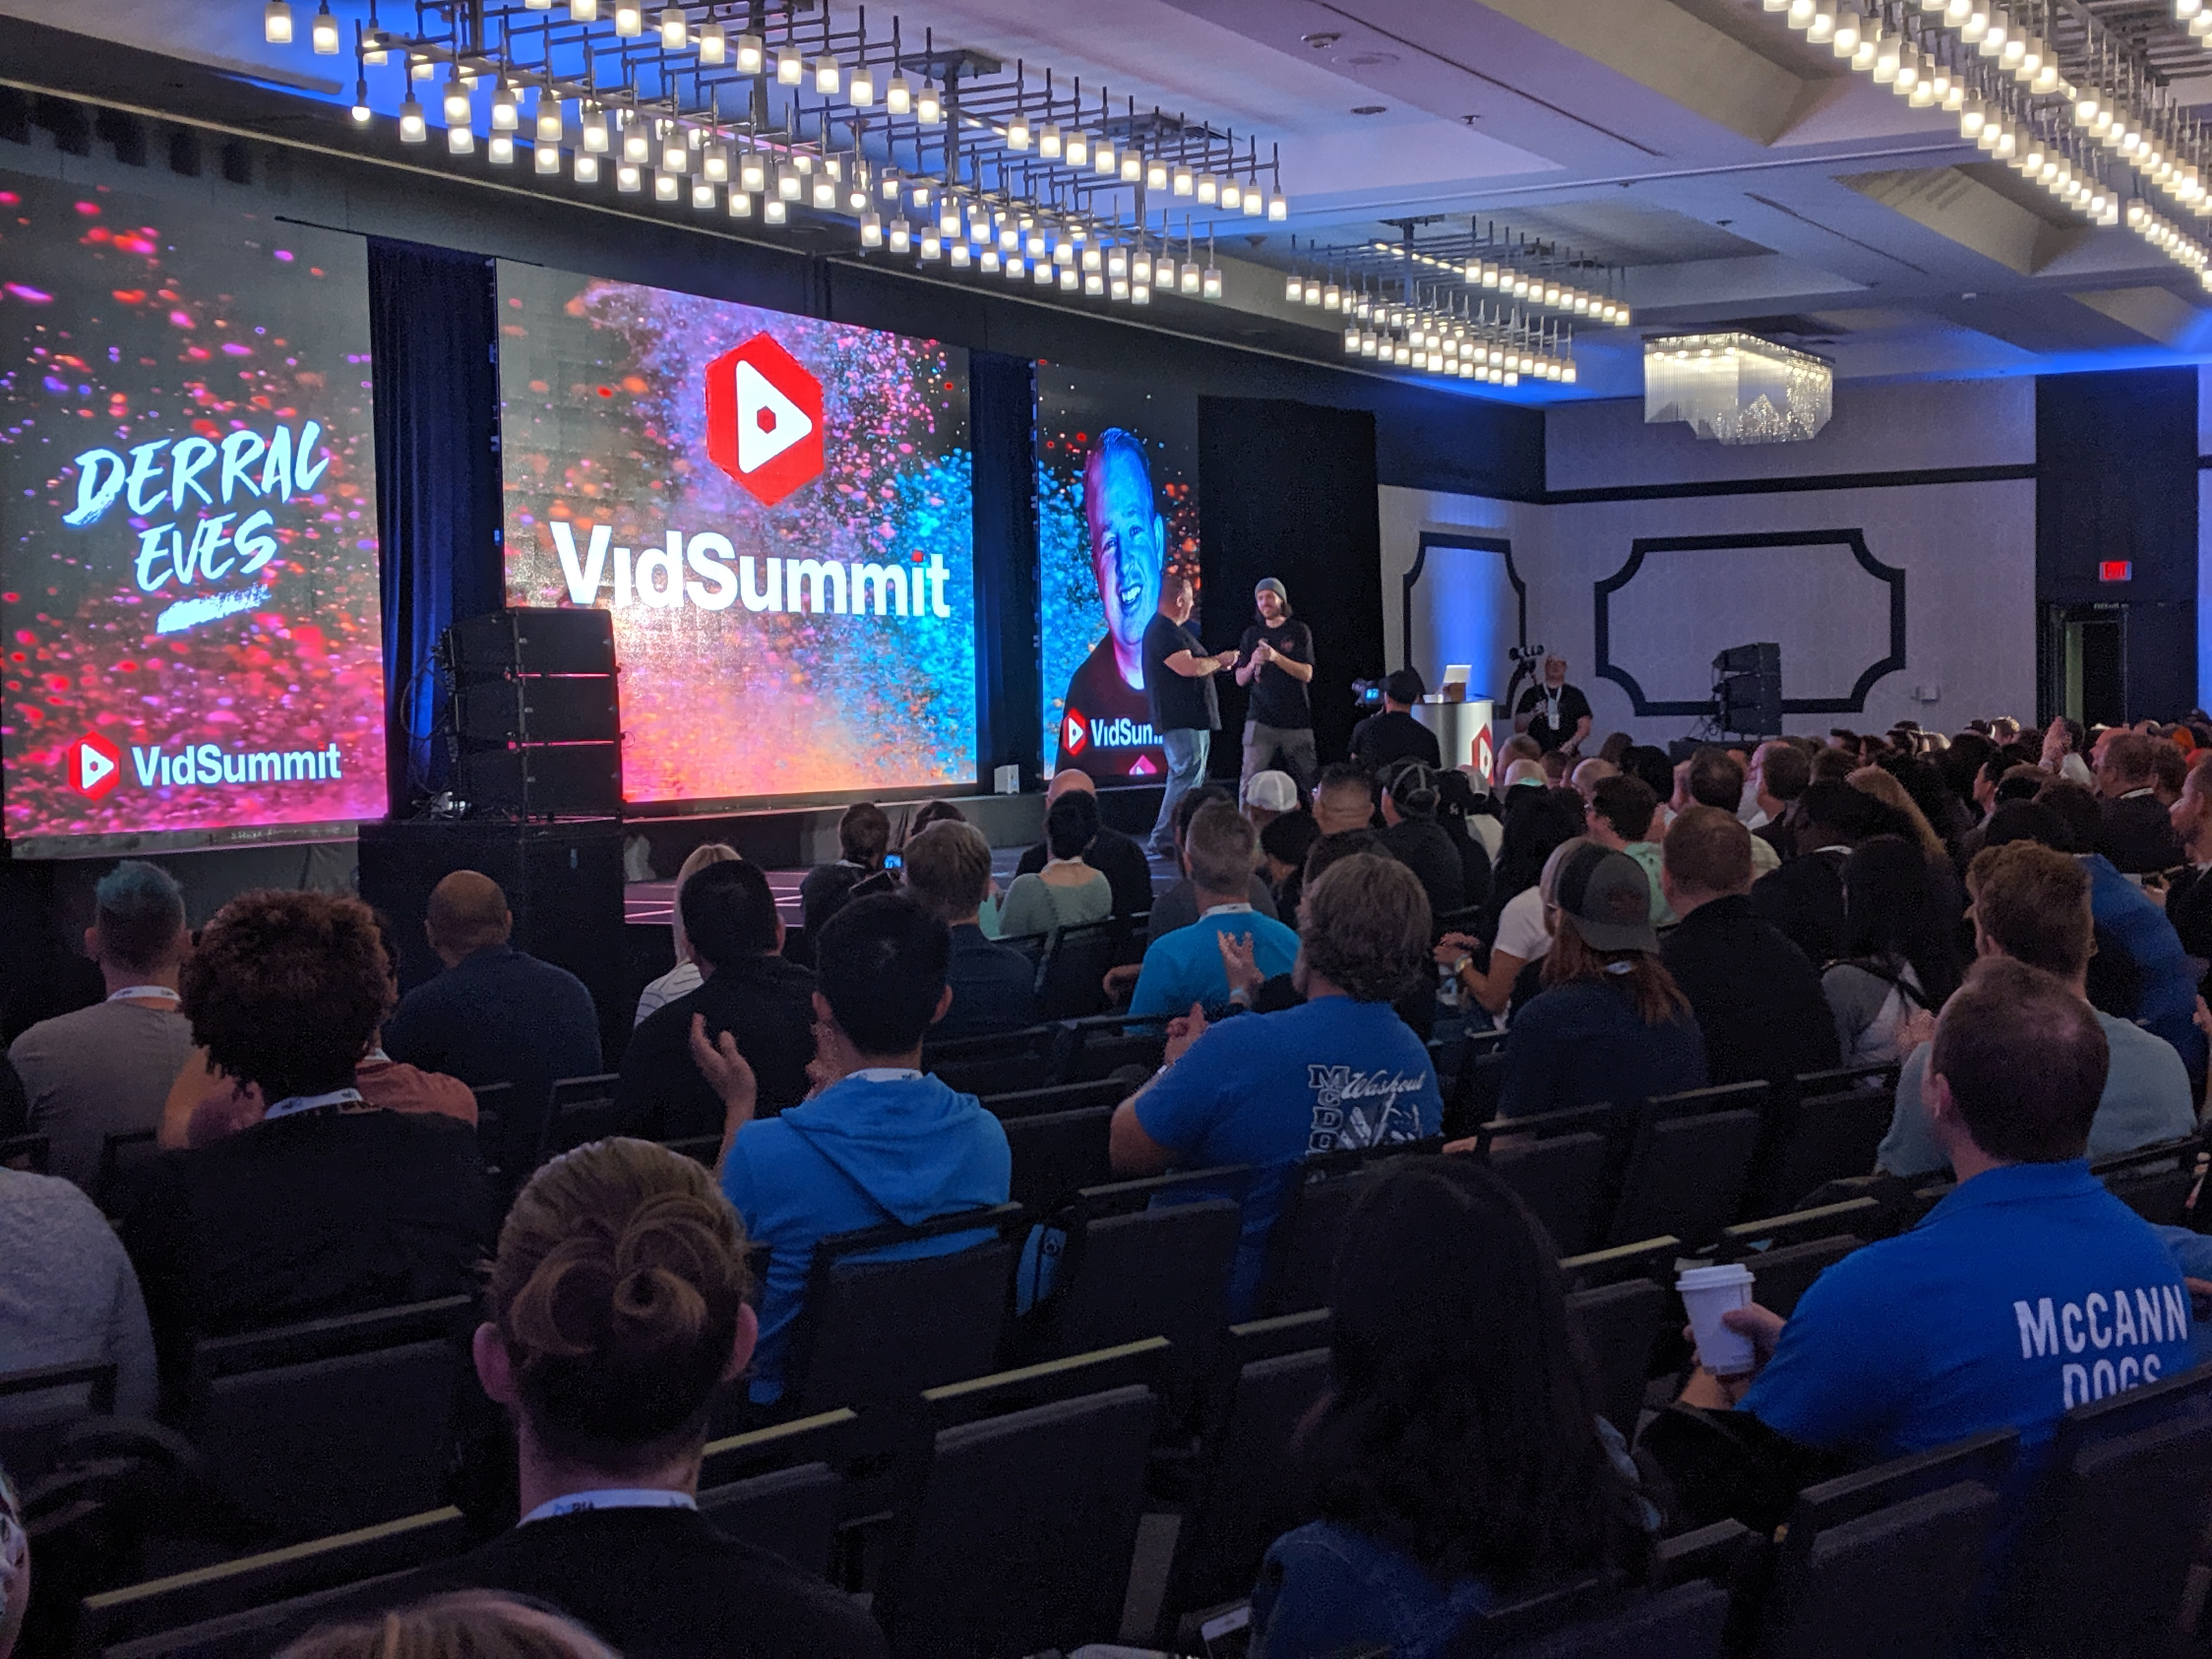 What you REALLY need to know about VidSummit